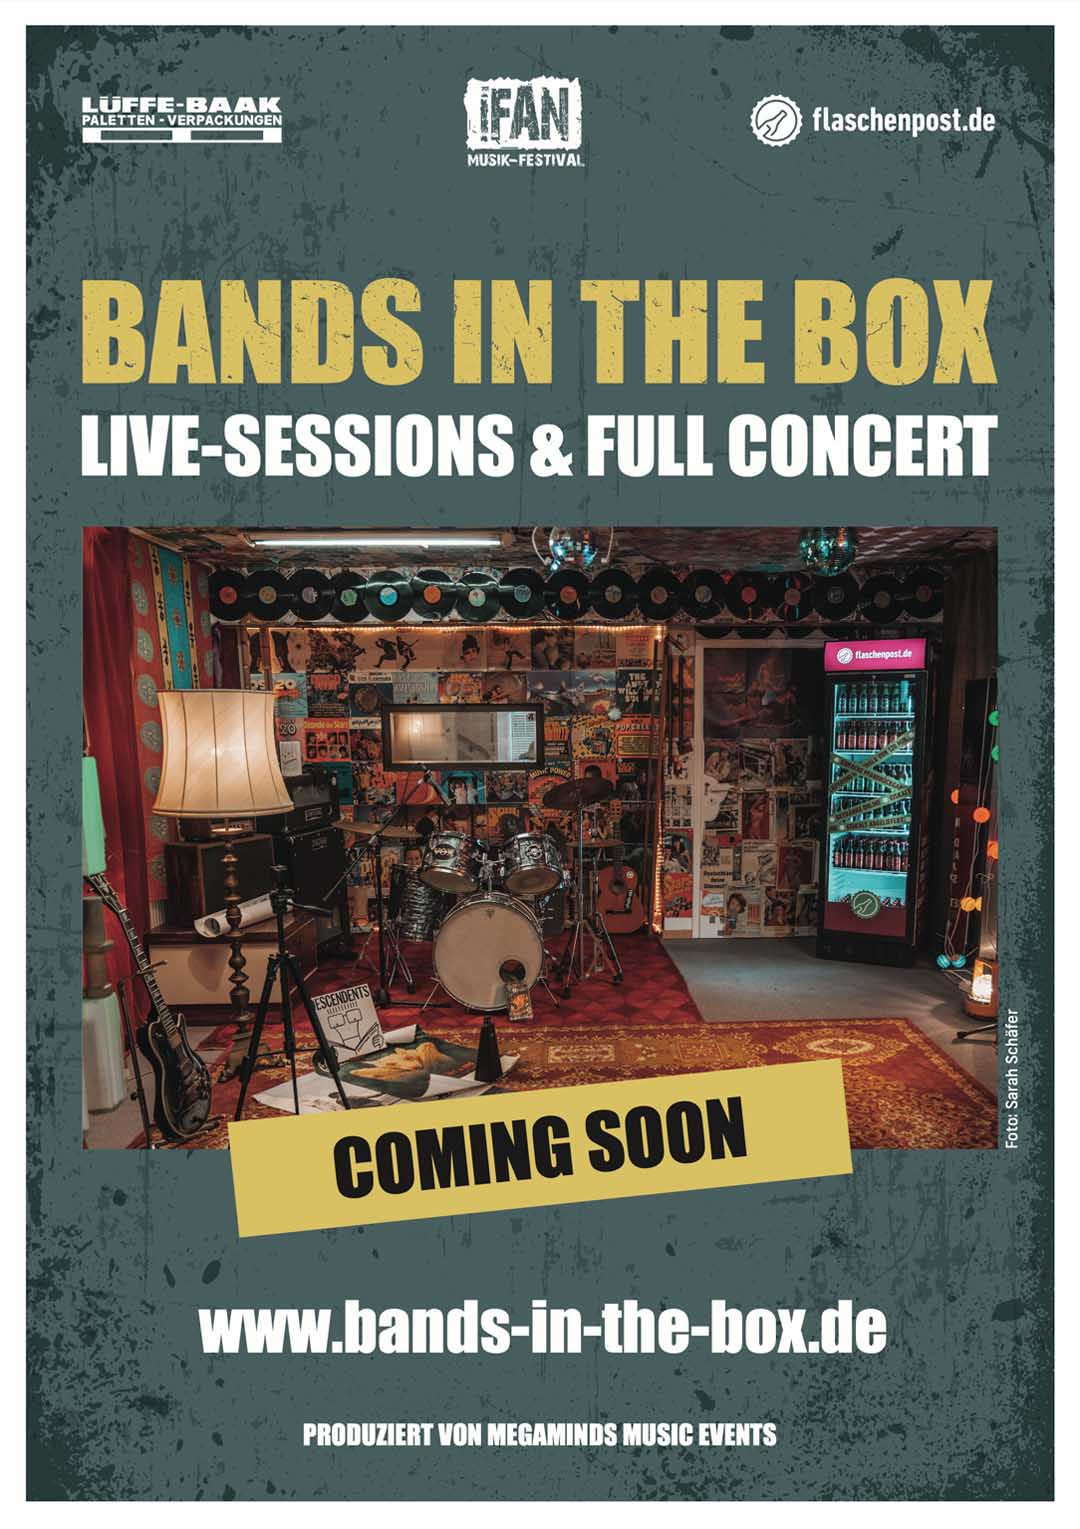 BANDS IN THE BOX - Live-Sessions & Full Concert